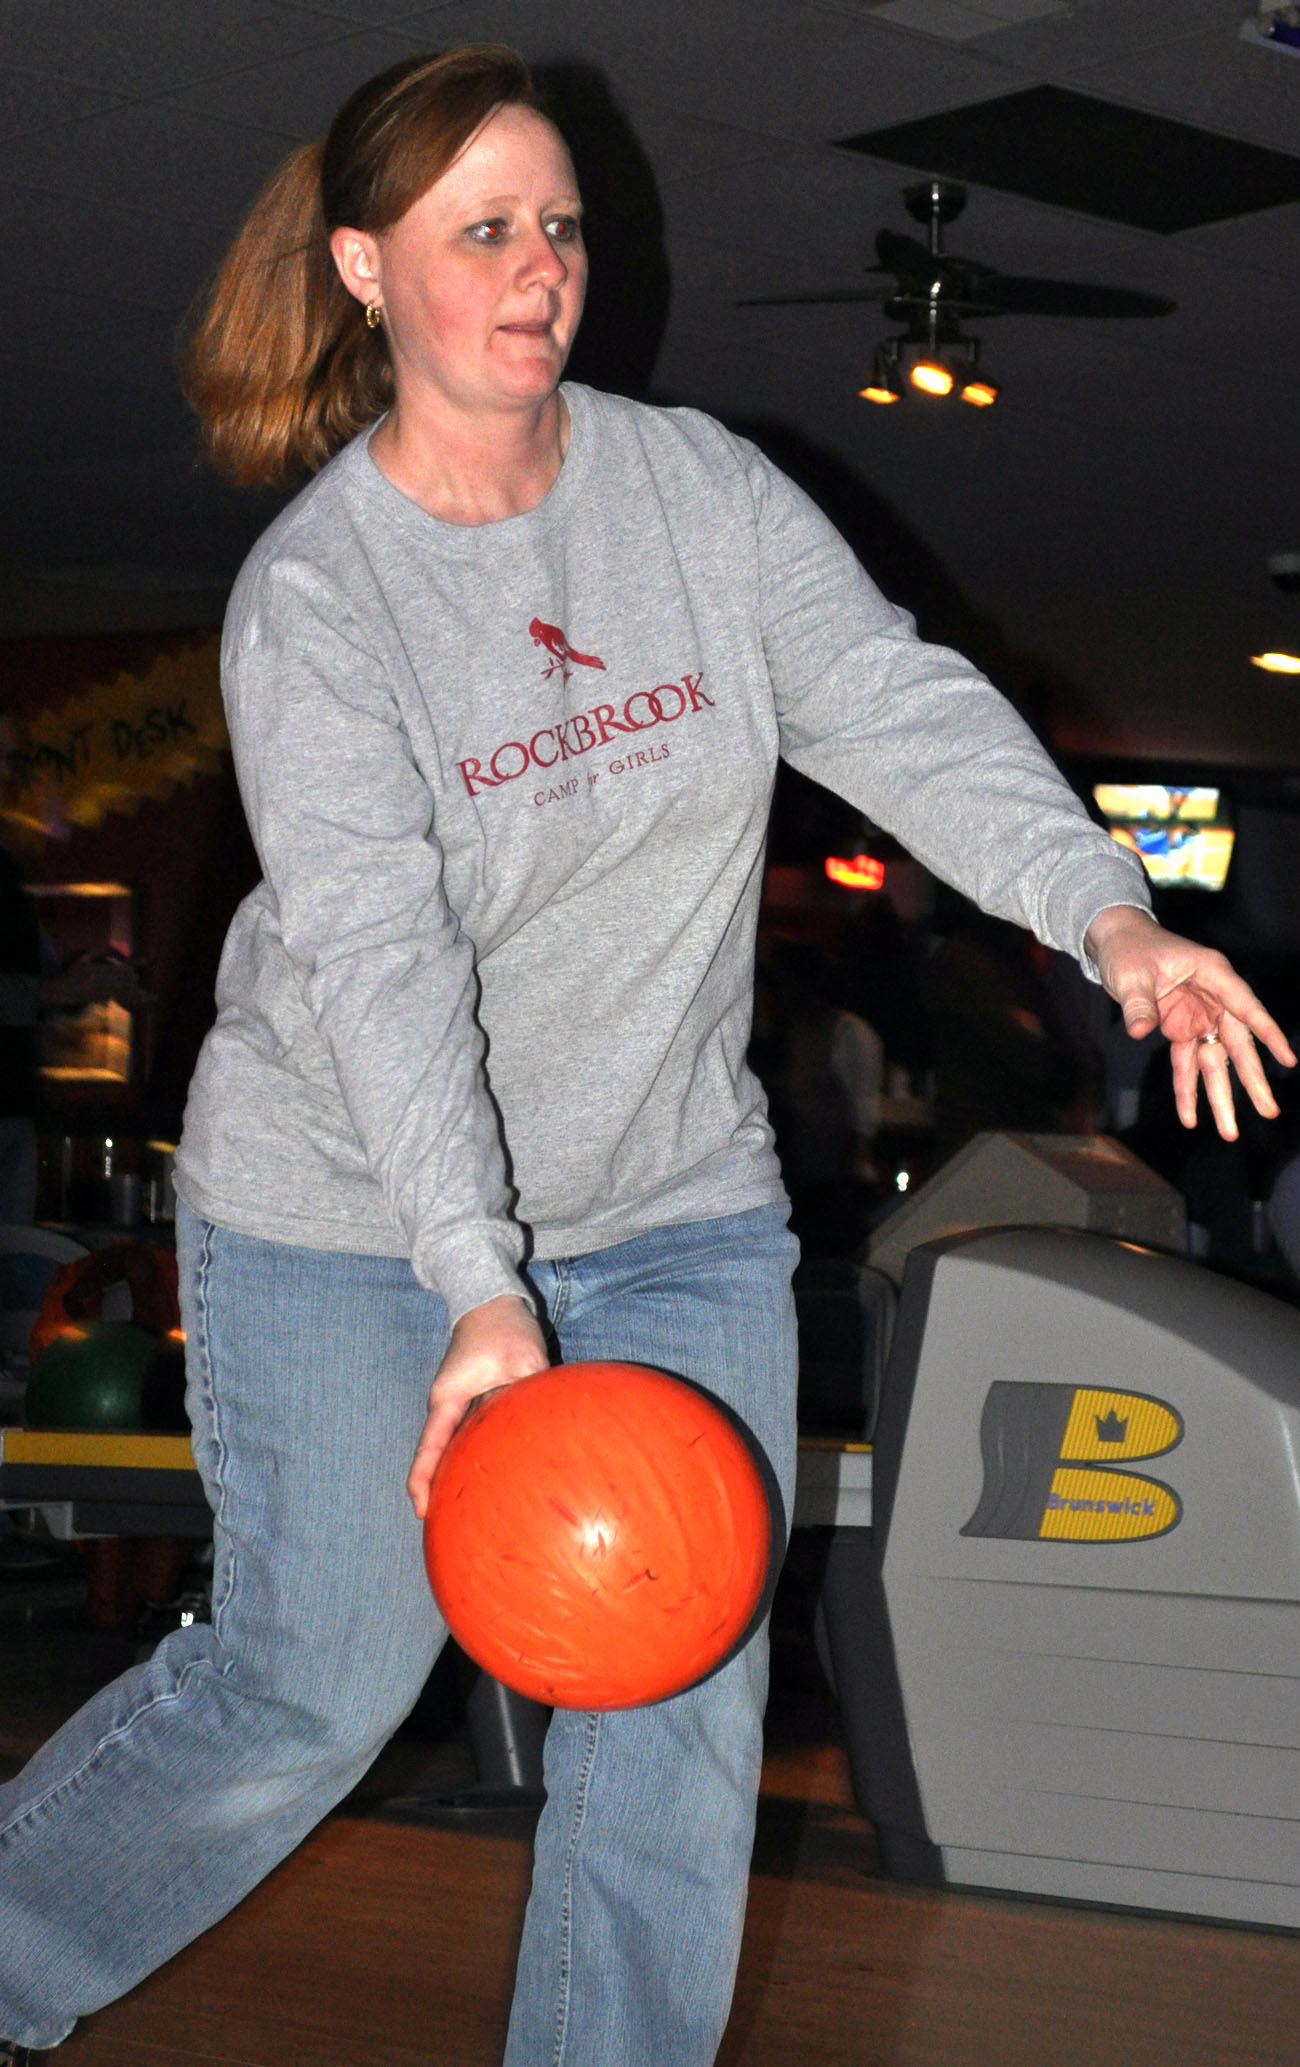 Connie bowling